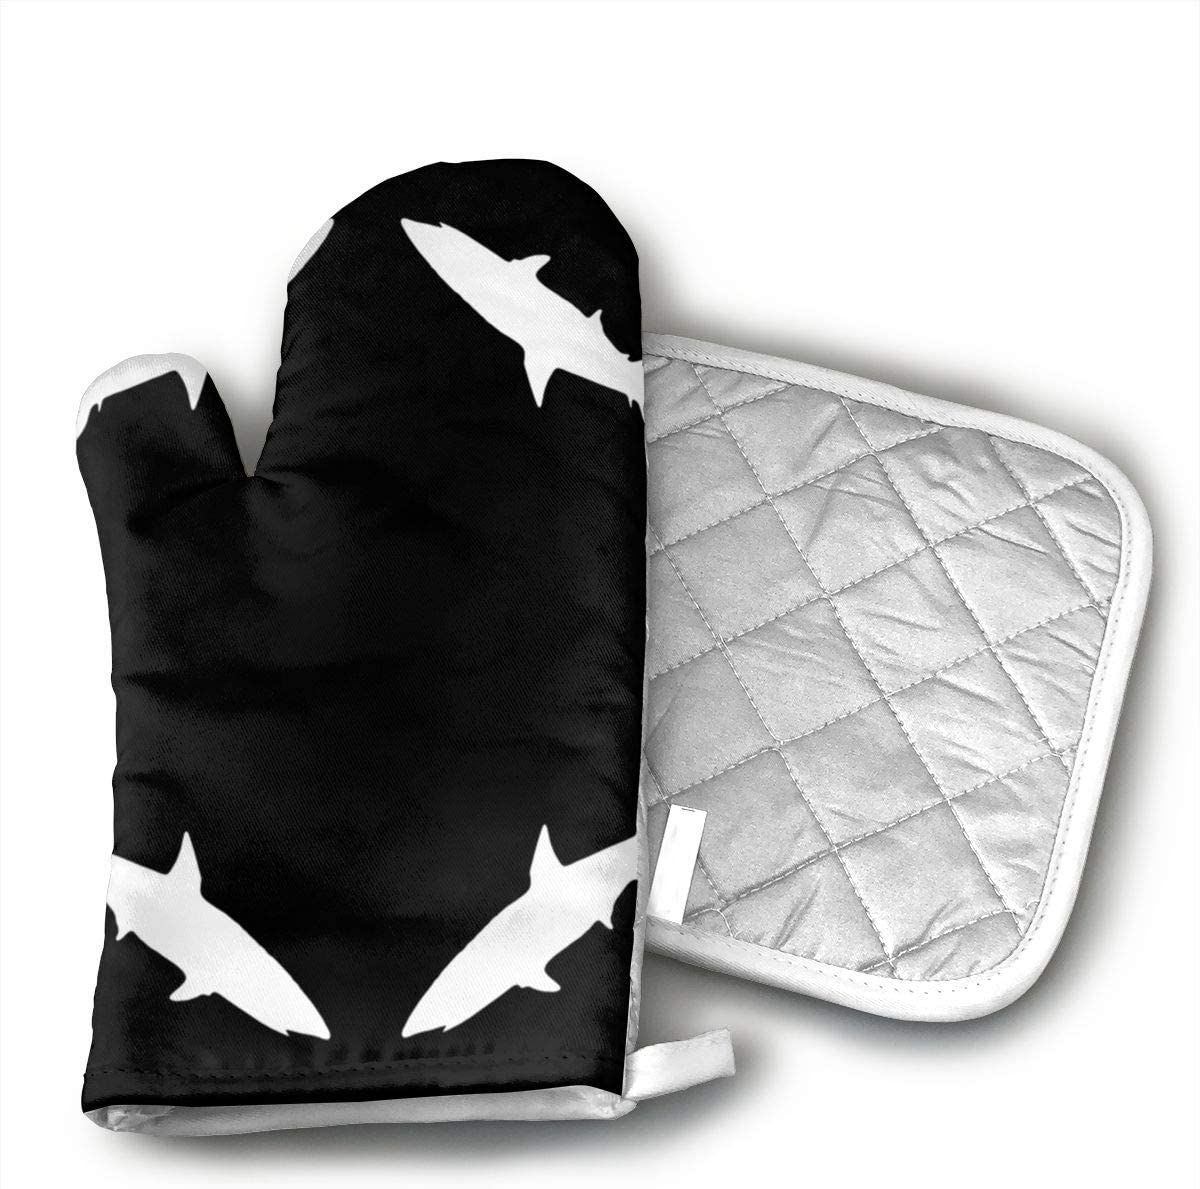 Thresher Shark, L Wallpaper 1 of Heat Resistant Oven Gloves for Cooking,Grilling,Barbecue Potholders,Oven Mitts with Polyester Fabric Printed Pattern